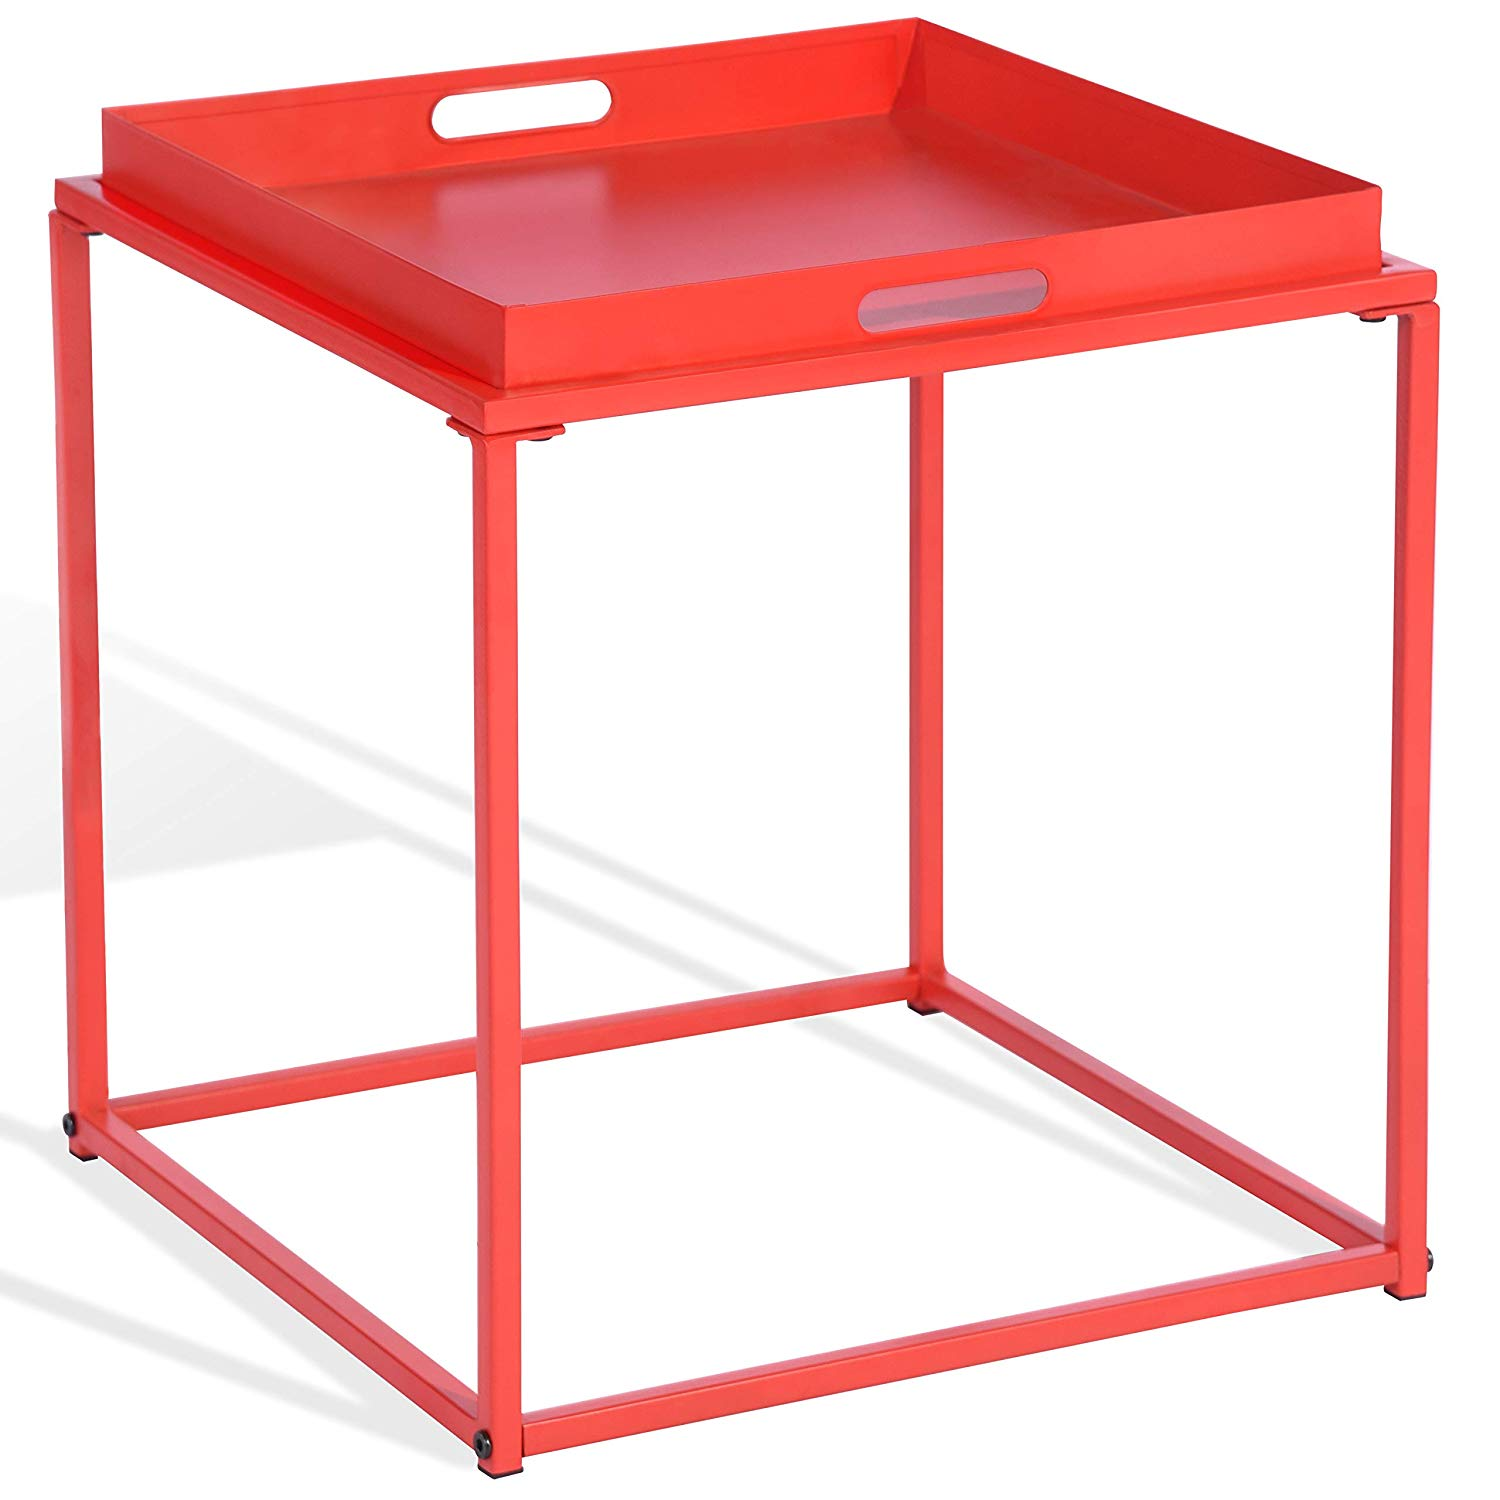 CAP LIVING 15.7 Inch Square Metal Tray End Table, Side Table, Colors  Available In Matte Red And Matte Black